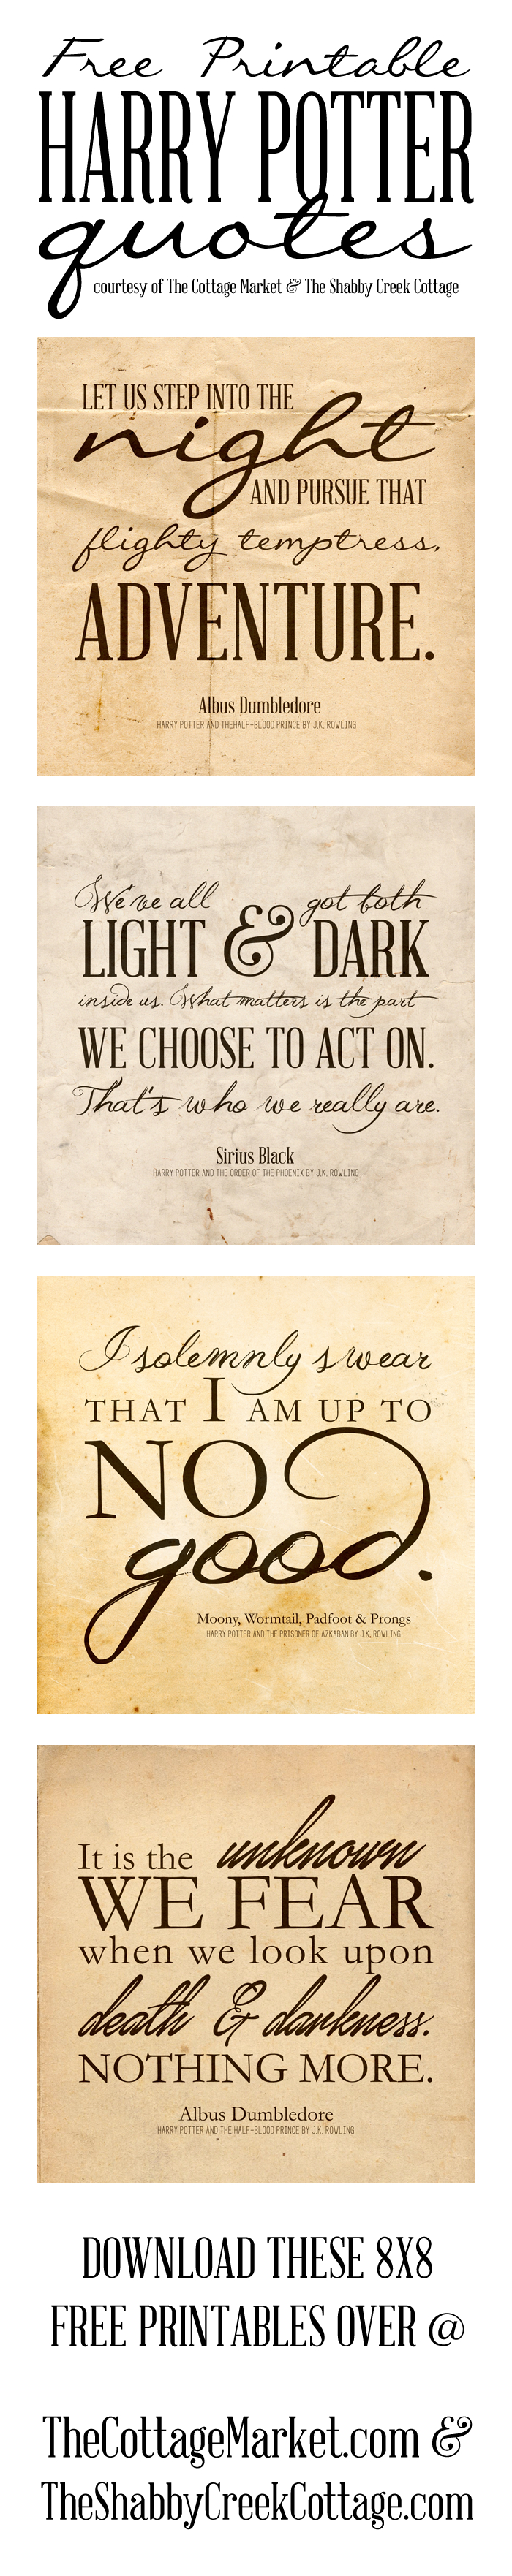 Free Harry Potter Quotes Printables | Pinterest | Harry Potter, Free - Free Printable Harry Potter Posters